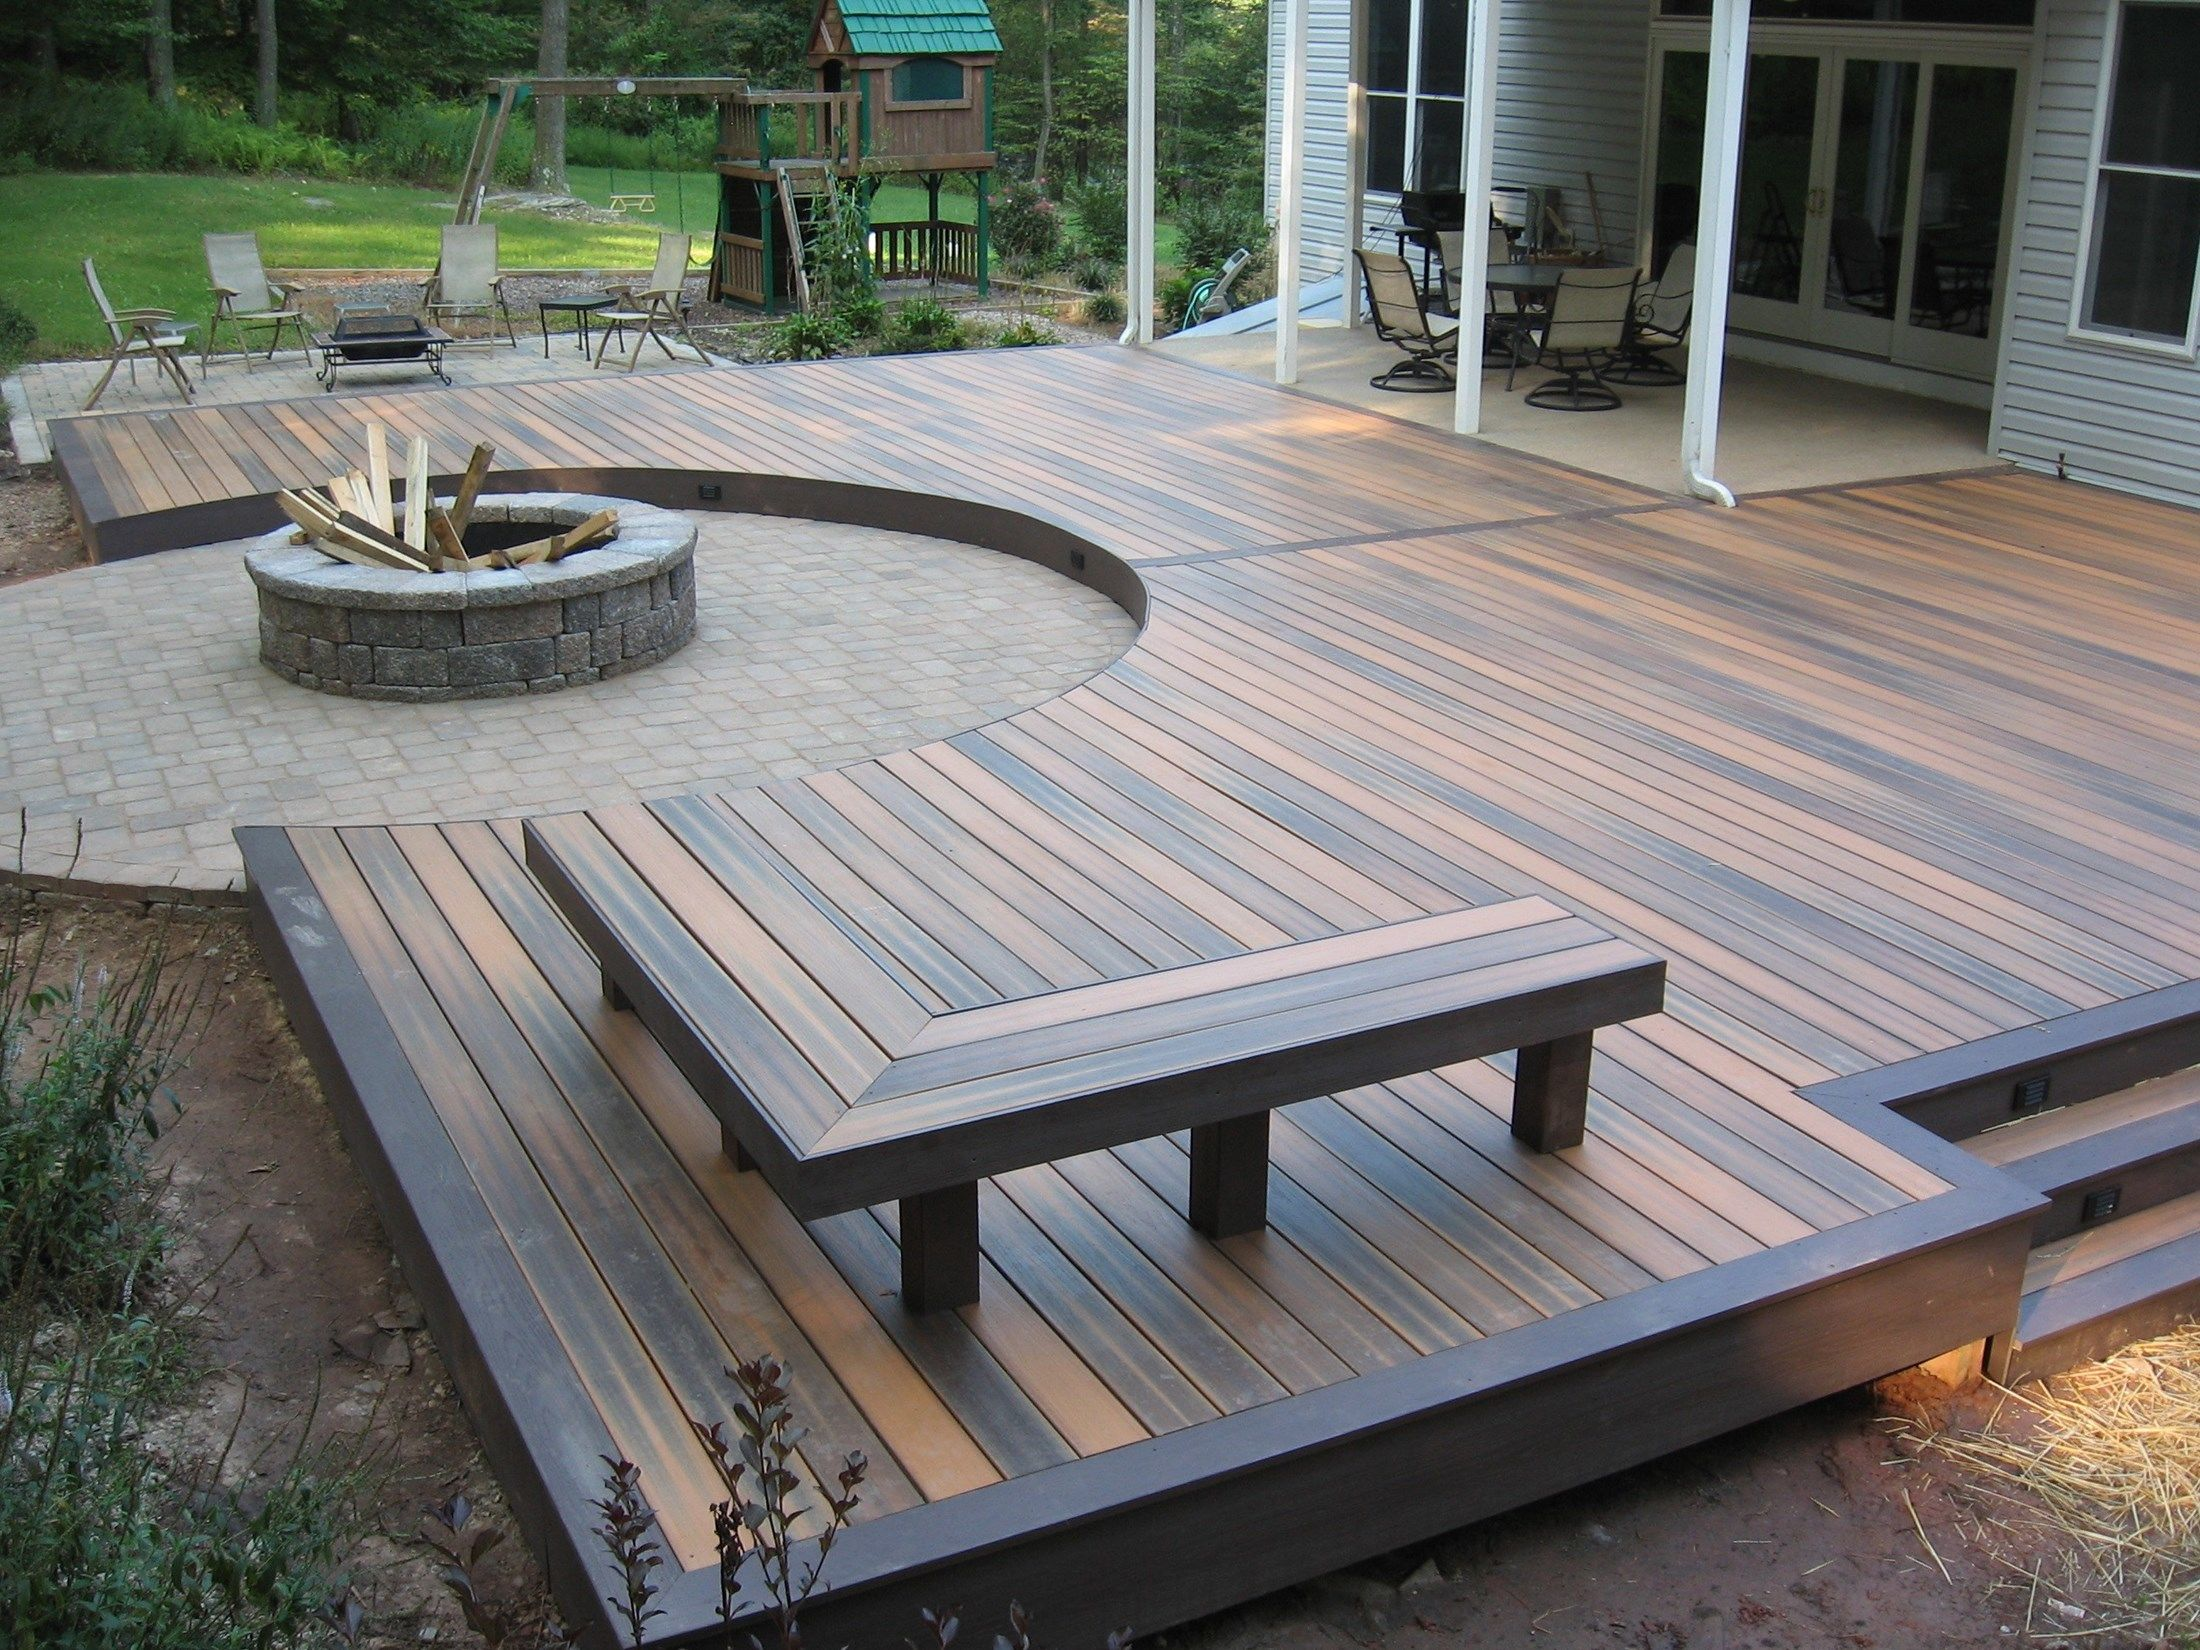 Ground Level Deck Ideas, Designs & Pictures | Composite ... on House Backyard Deck id=40817